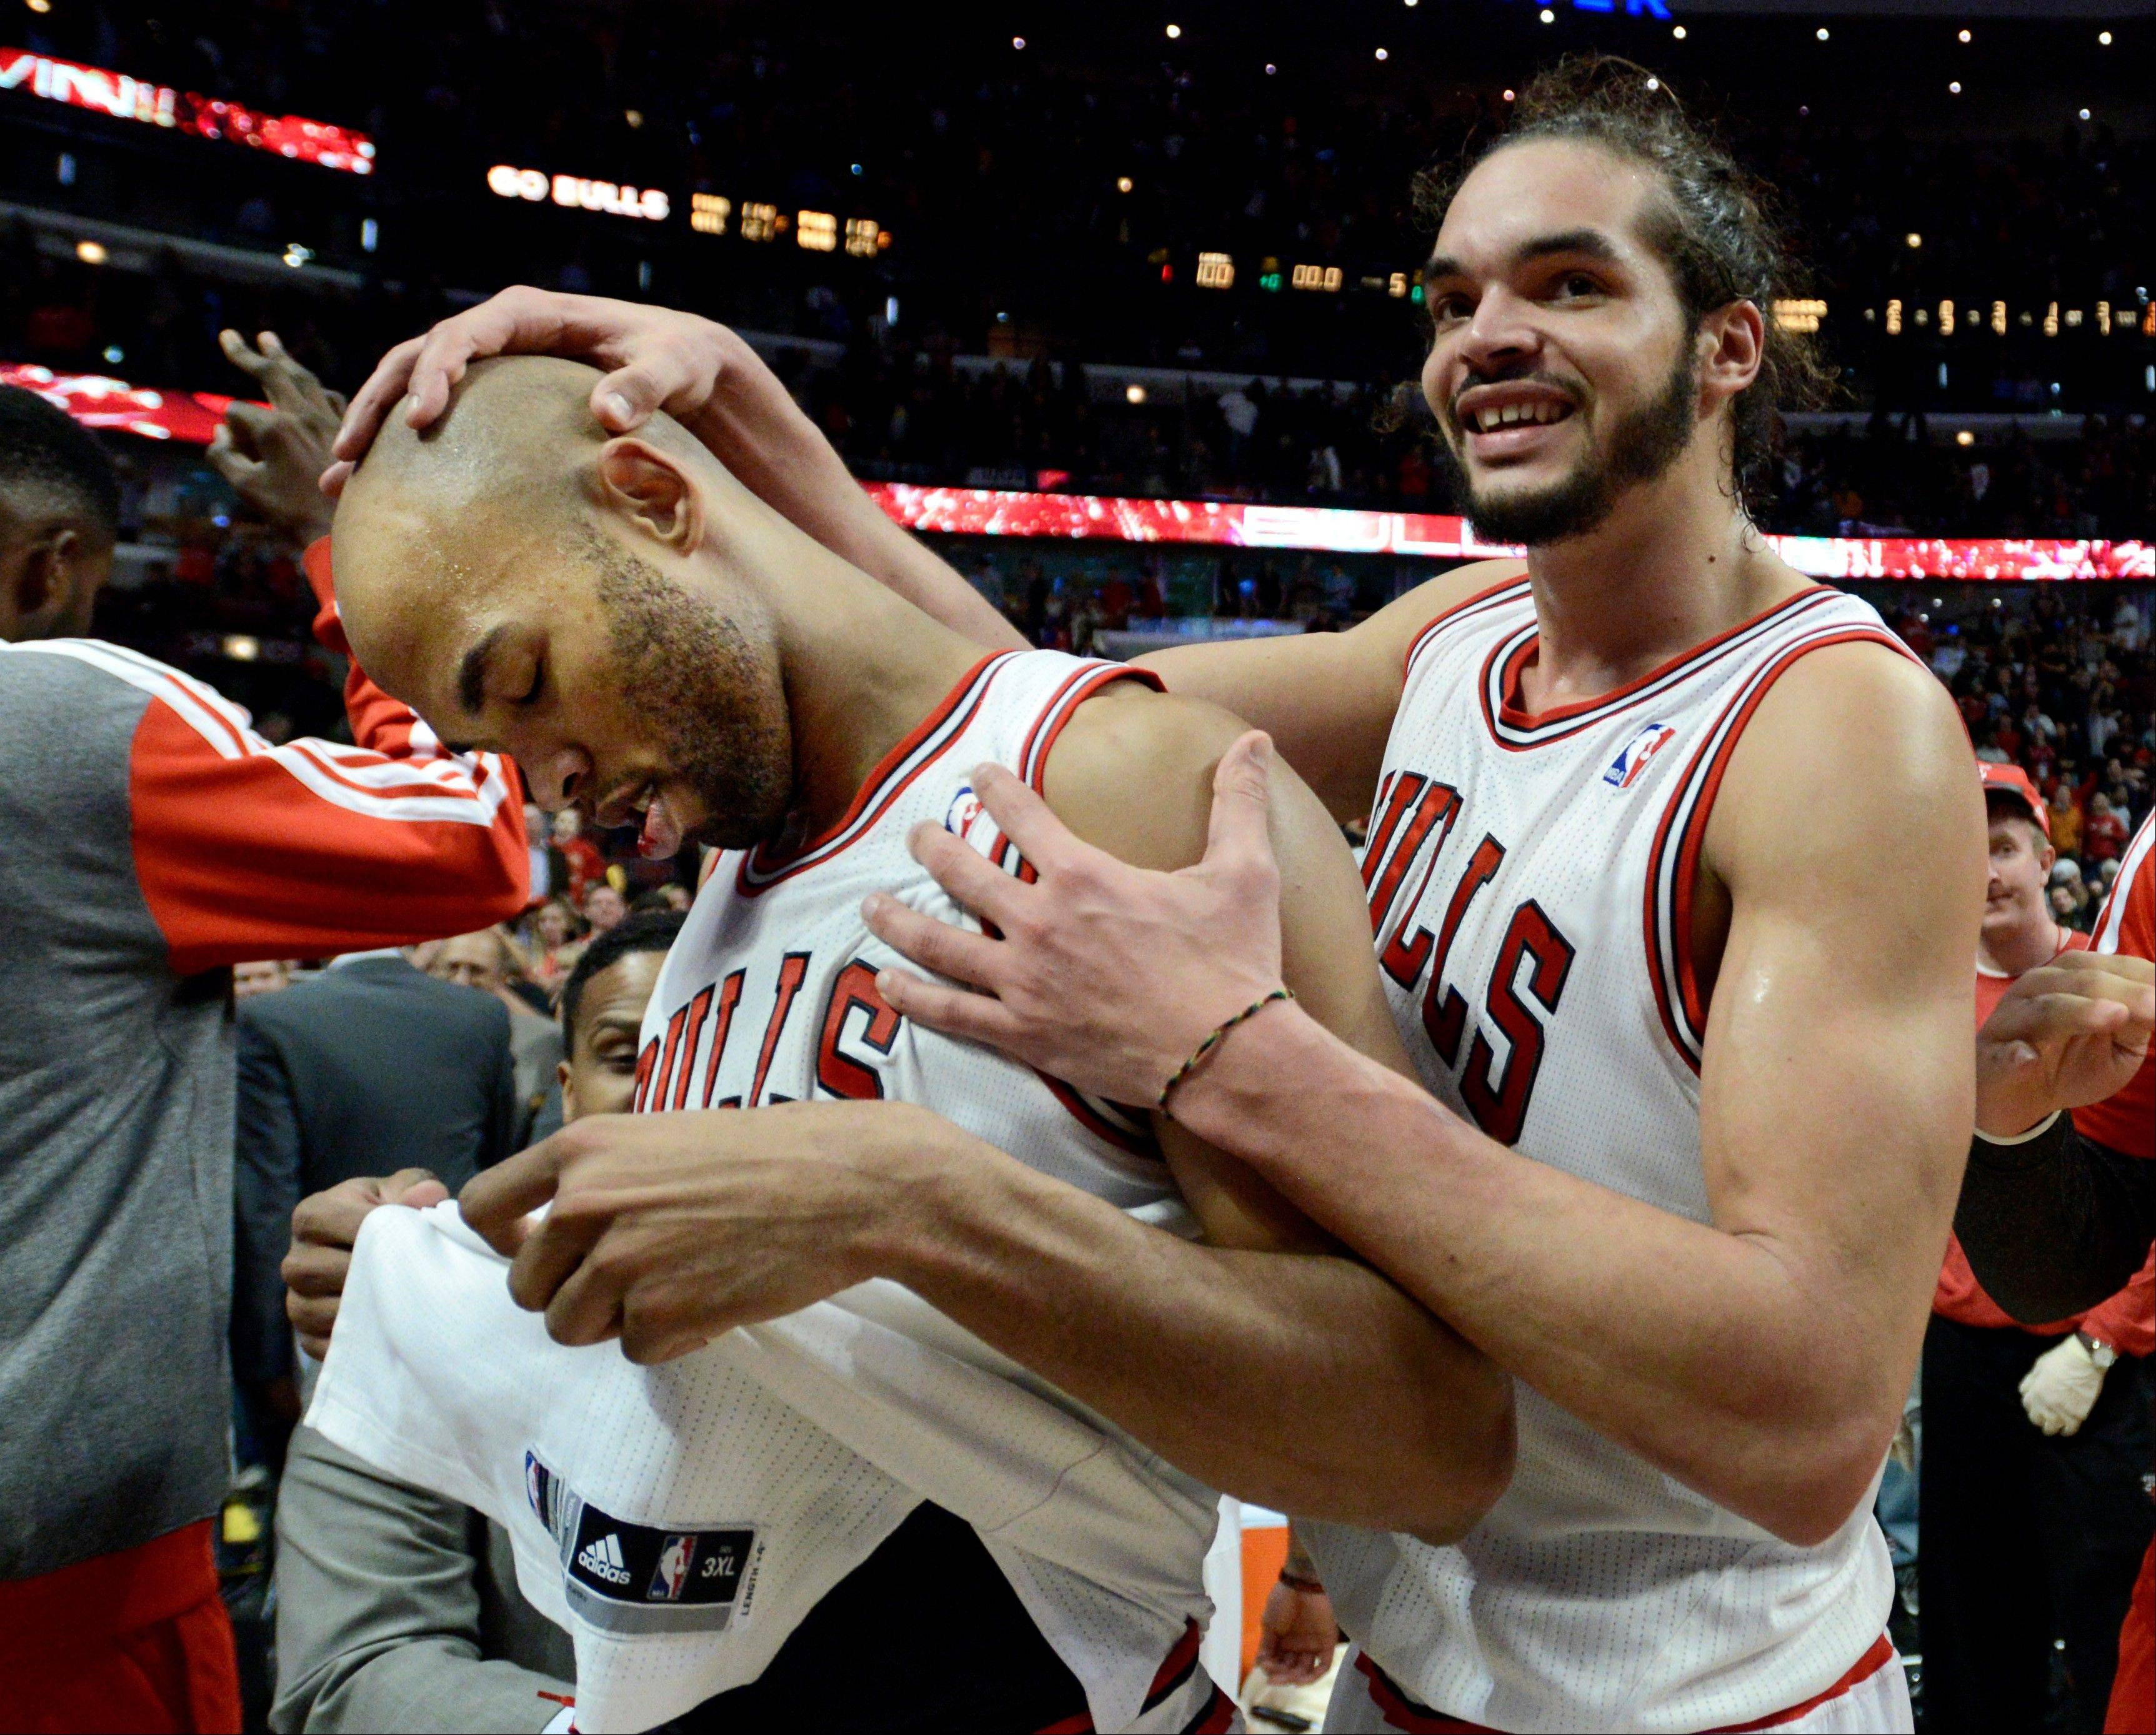 Joakim Noah, right, celebrates with teammate Taj Gibson after Gibson made the game-winning shot in overtime to defeat the Lakers on Monday night at the United Center.